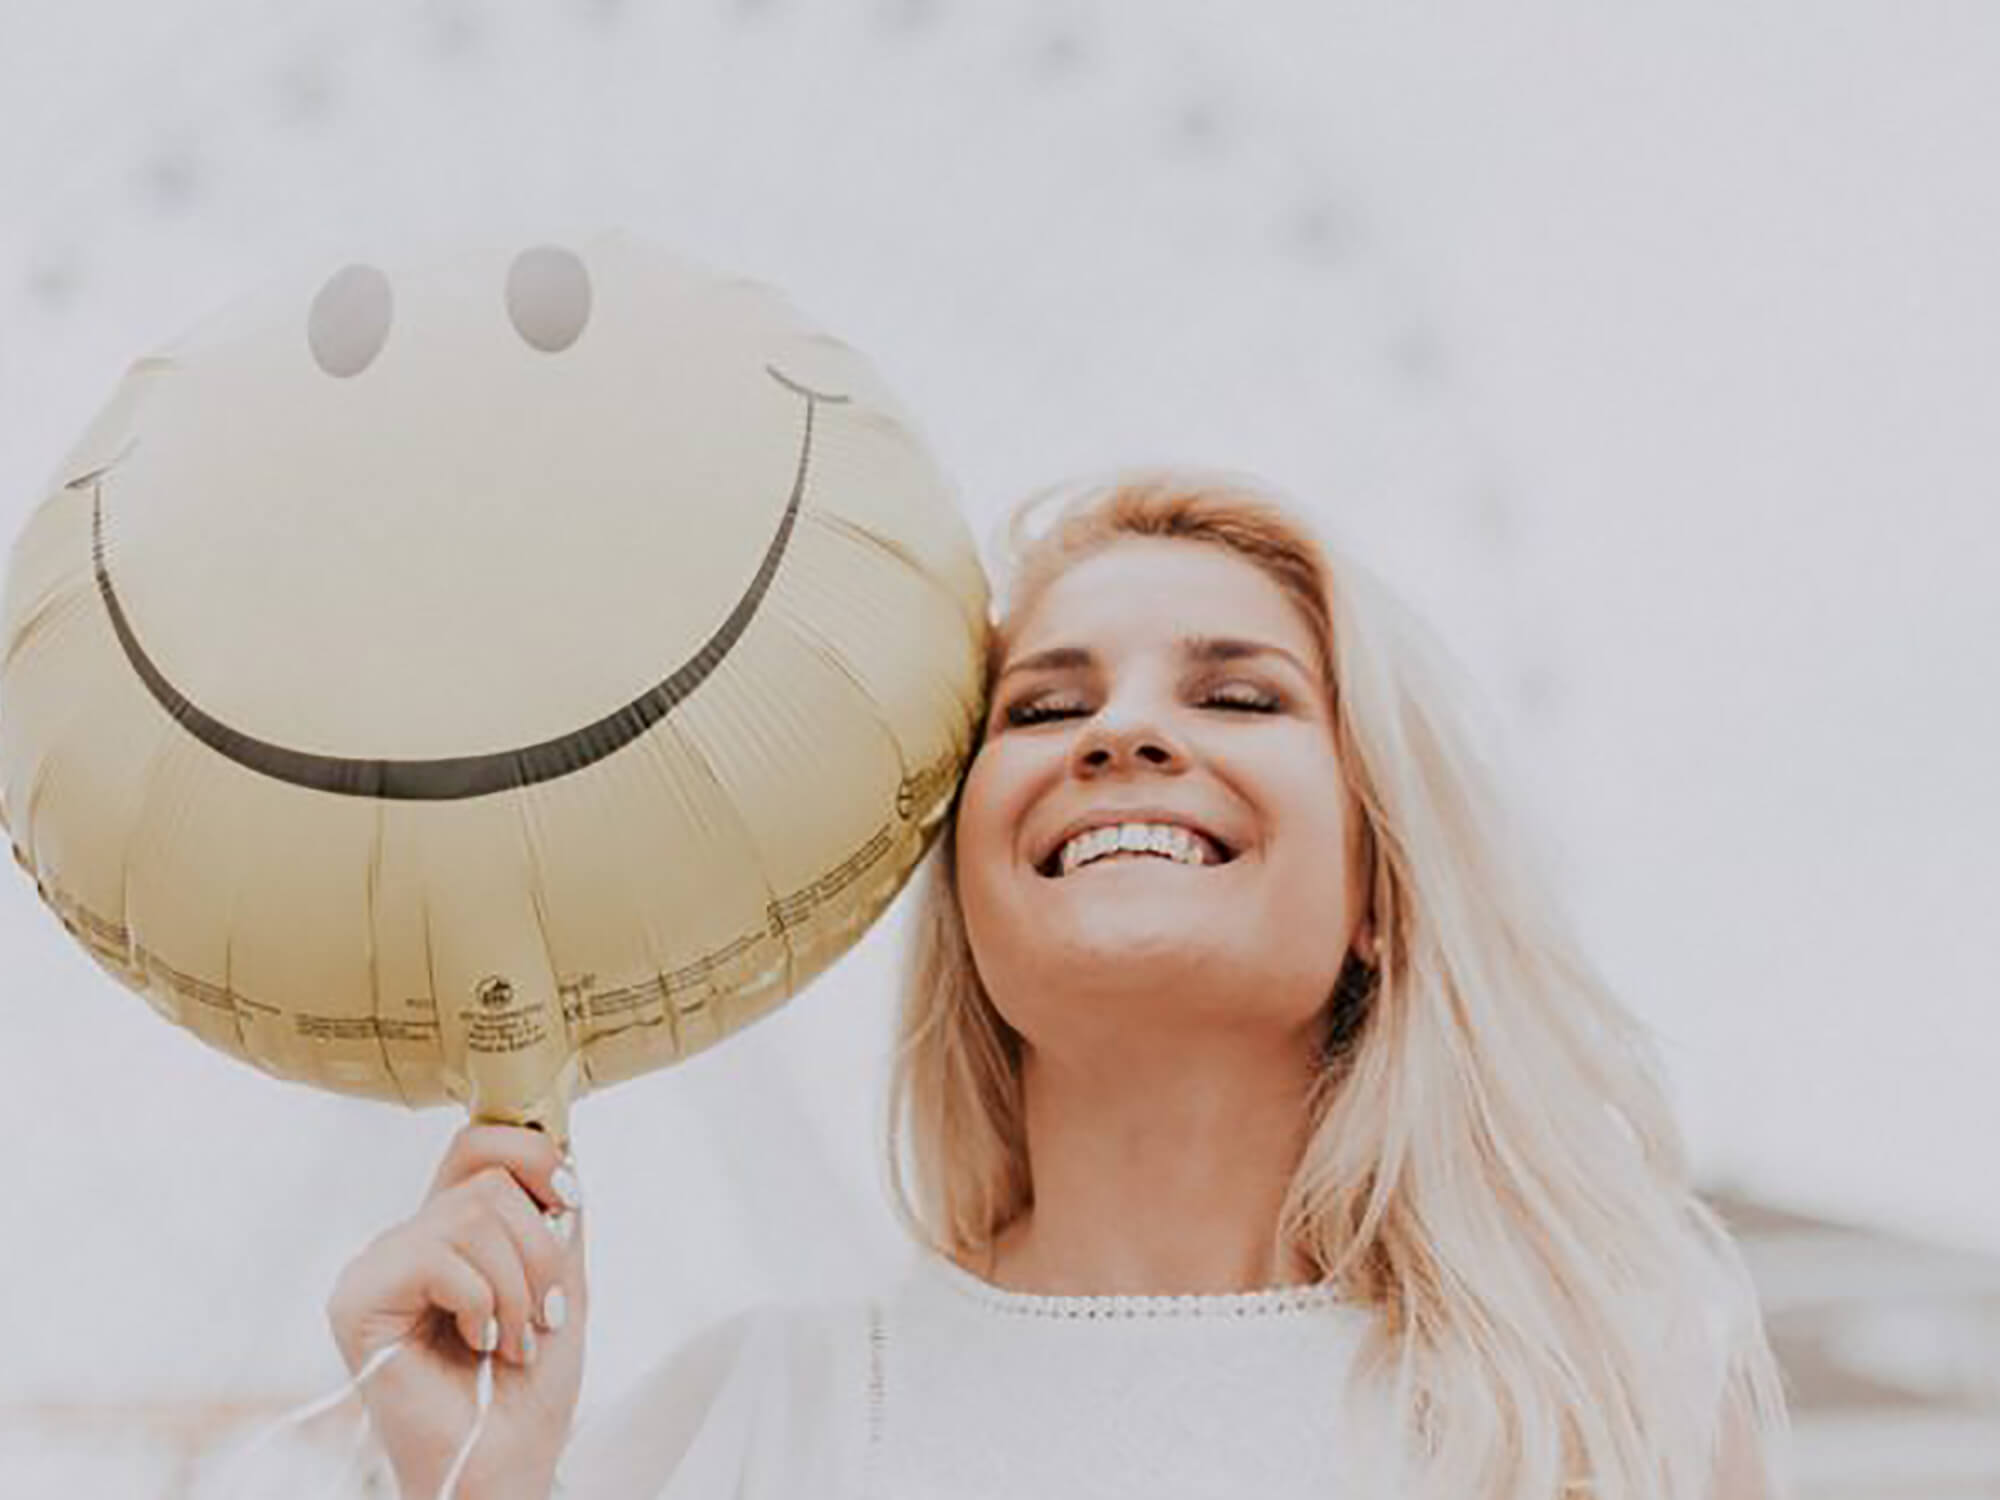 Person holding a smiley face balloon and smiling